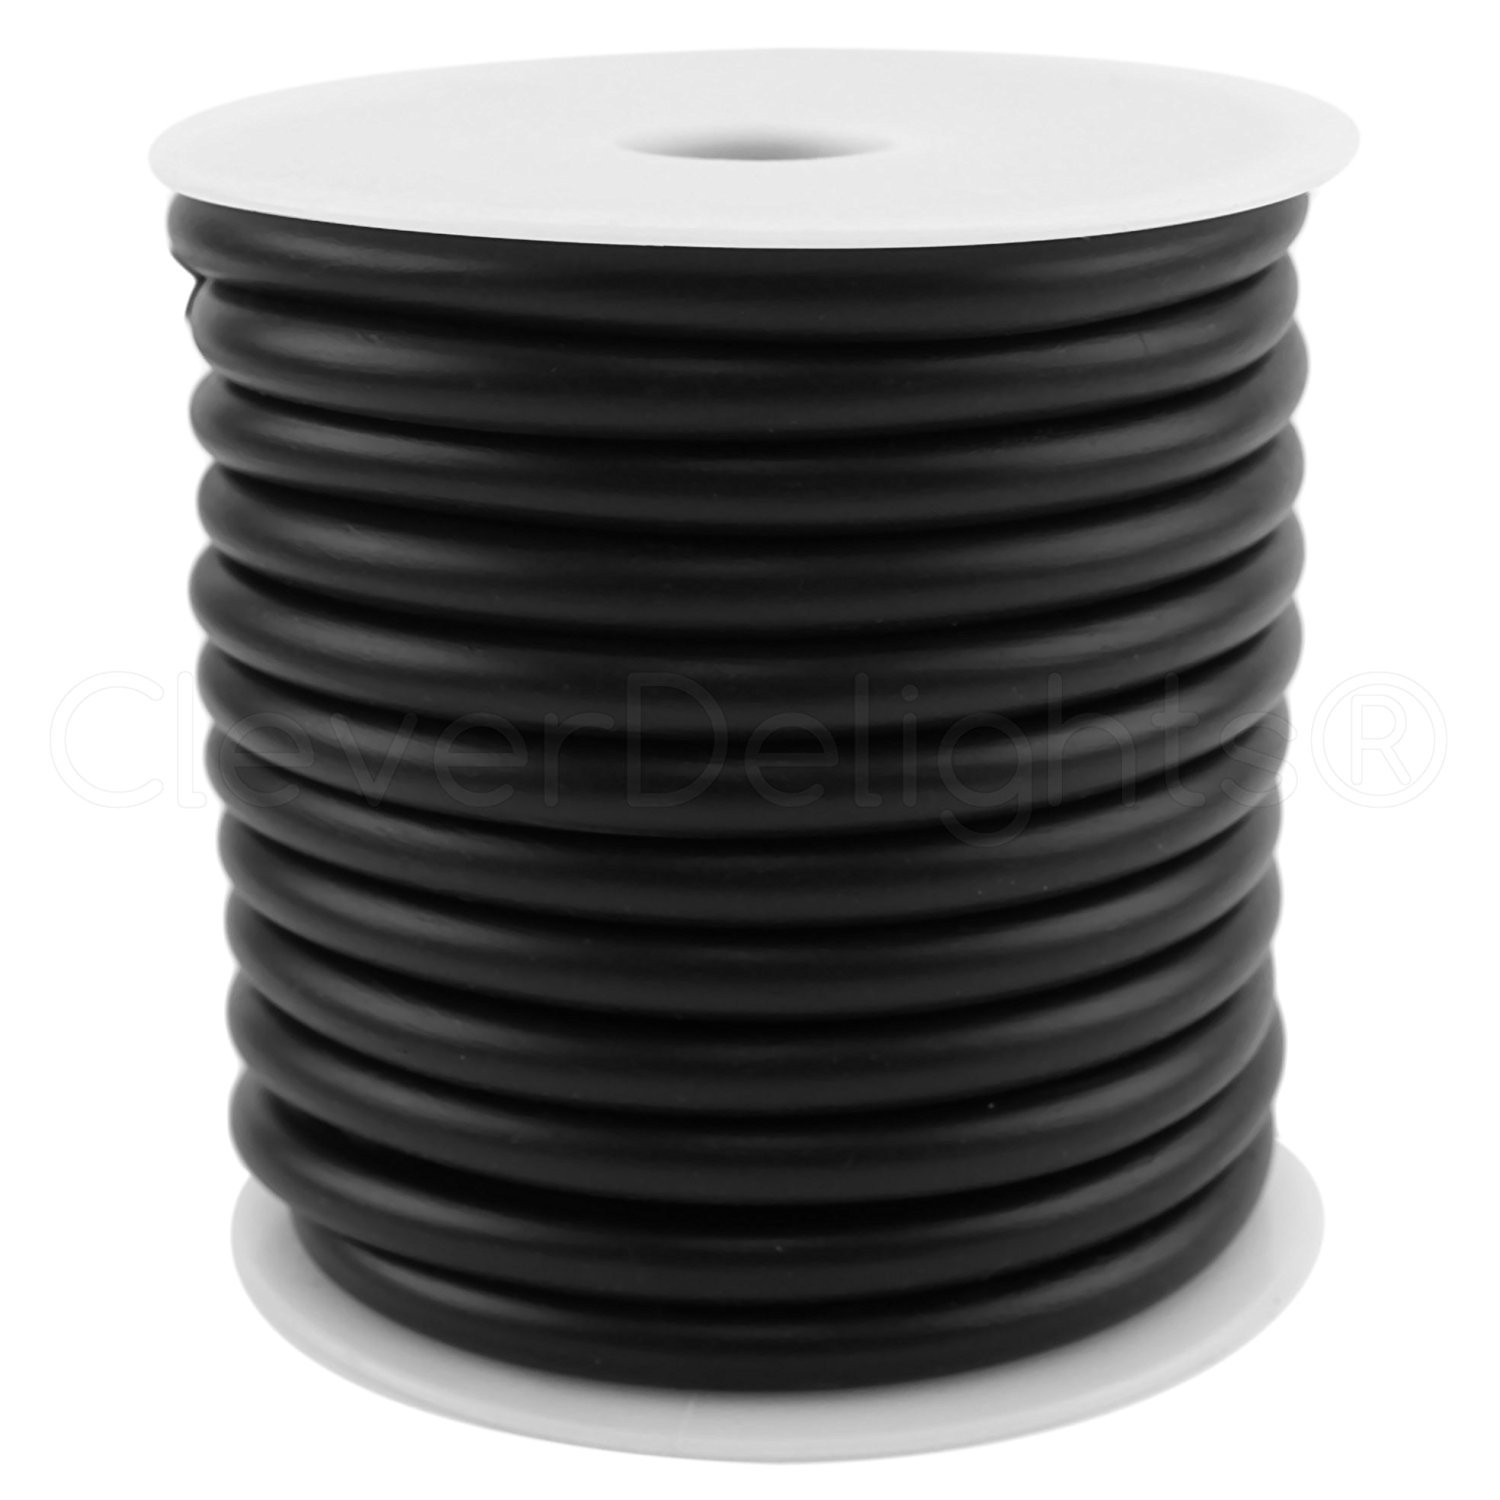 "CleverDelights Black Solid Rubber Cord - 30 Feet - 7mm (1/4"") Round"